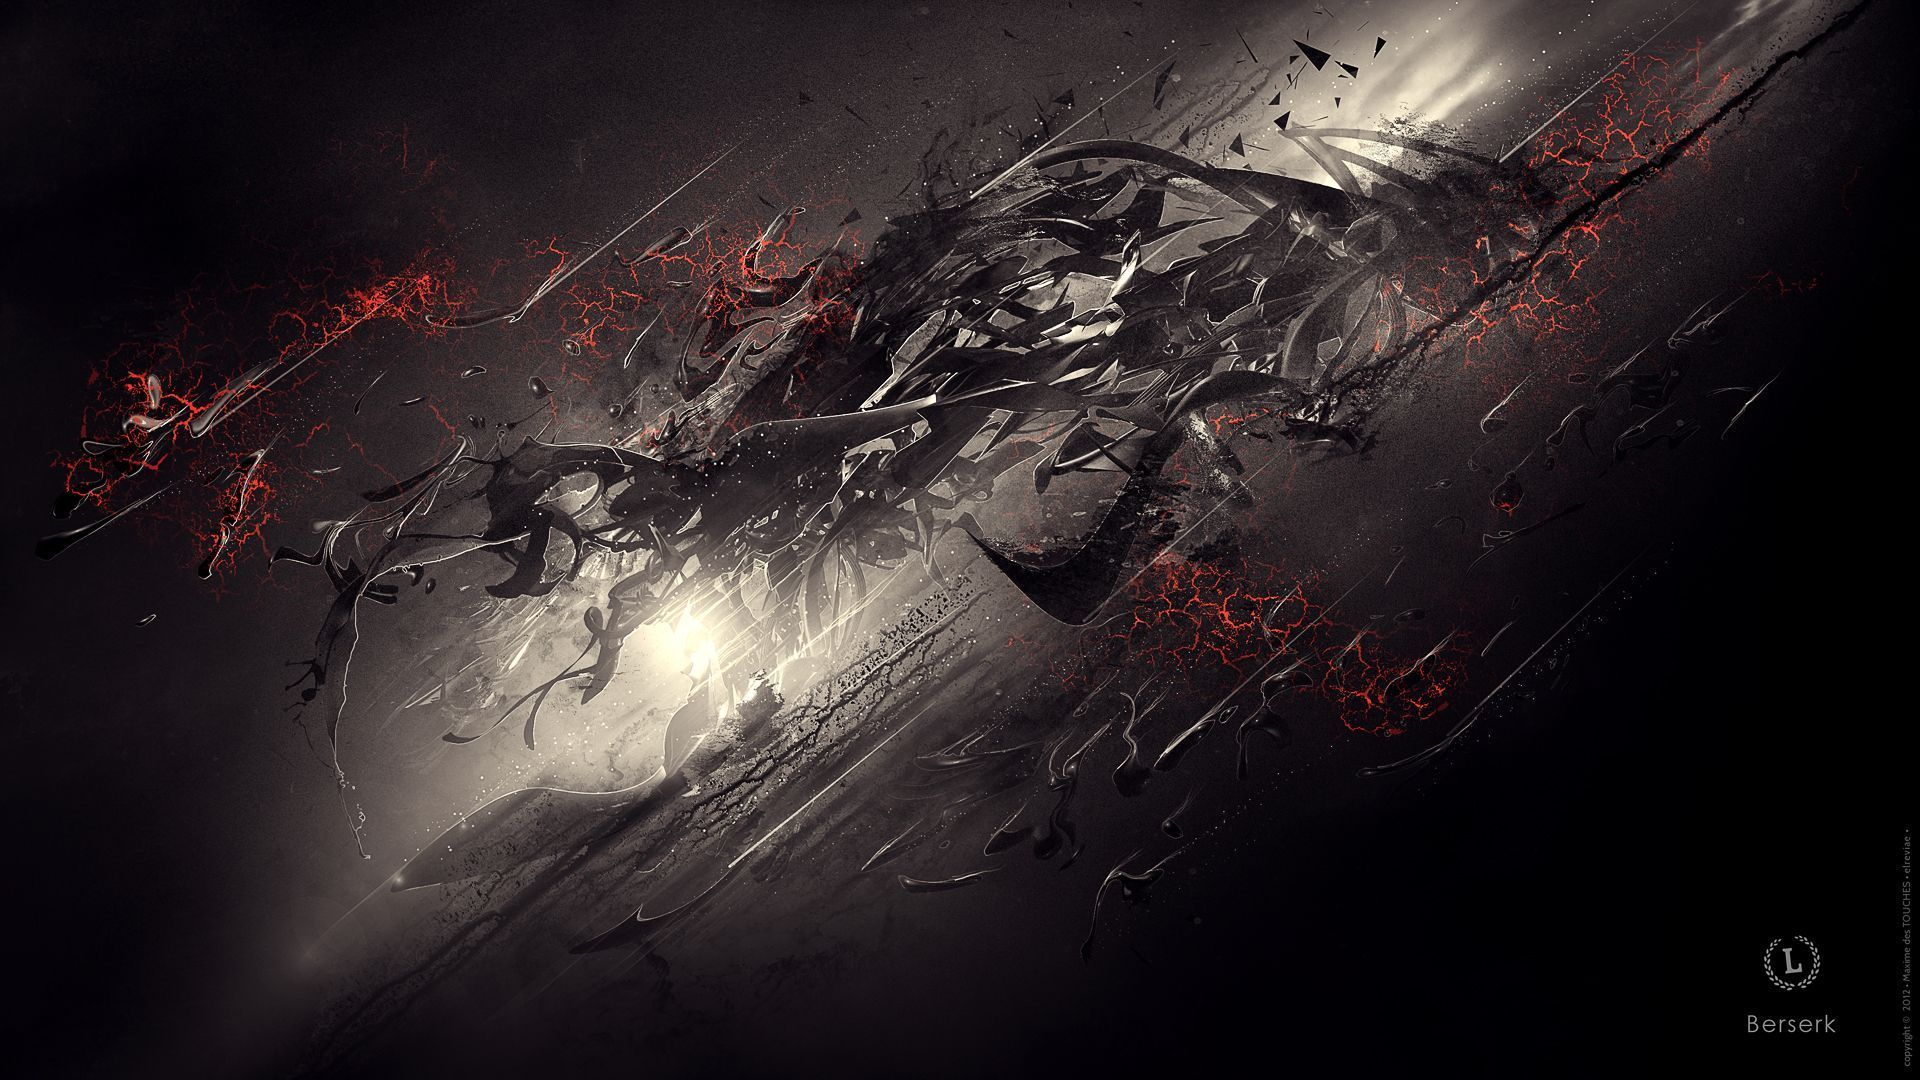 Download Berserk Tattoo Design Free Wallpaper 1920x1080 Full Hd Dark Wallpaper Abstract Wallpaper Dark Anime